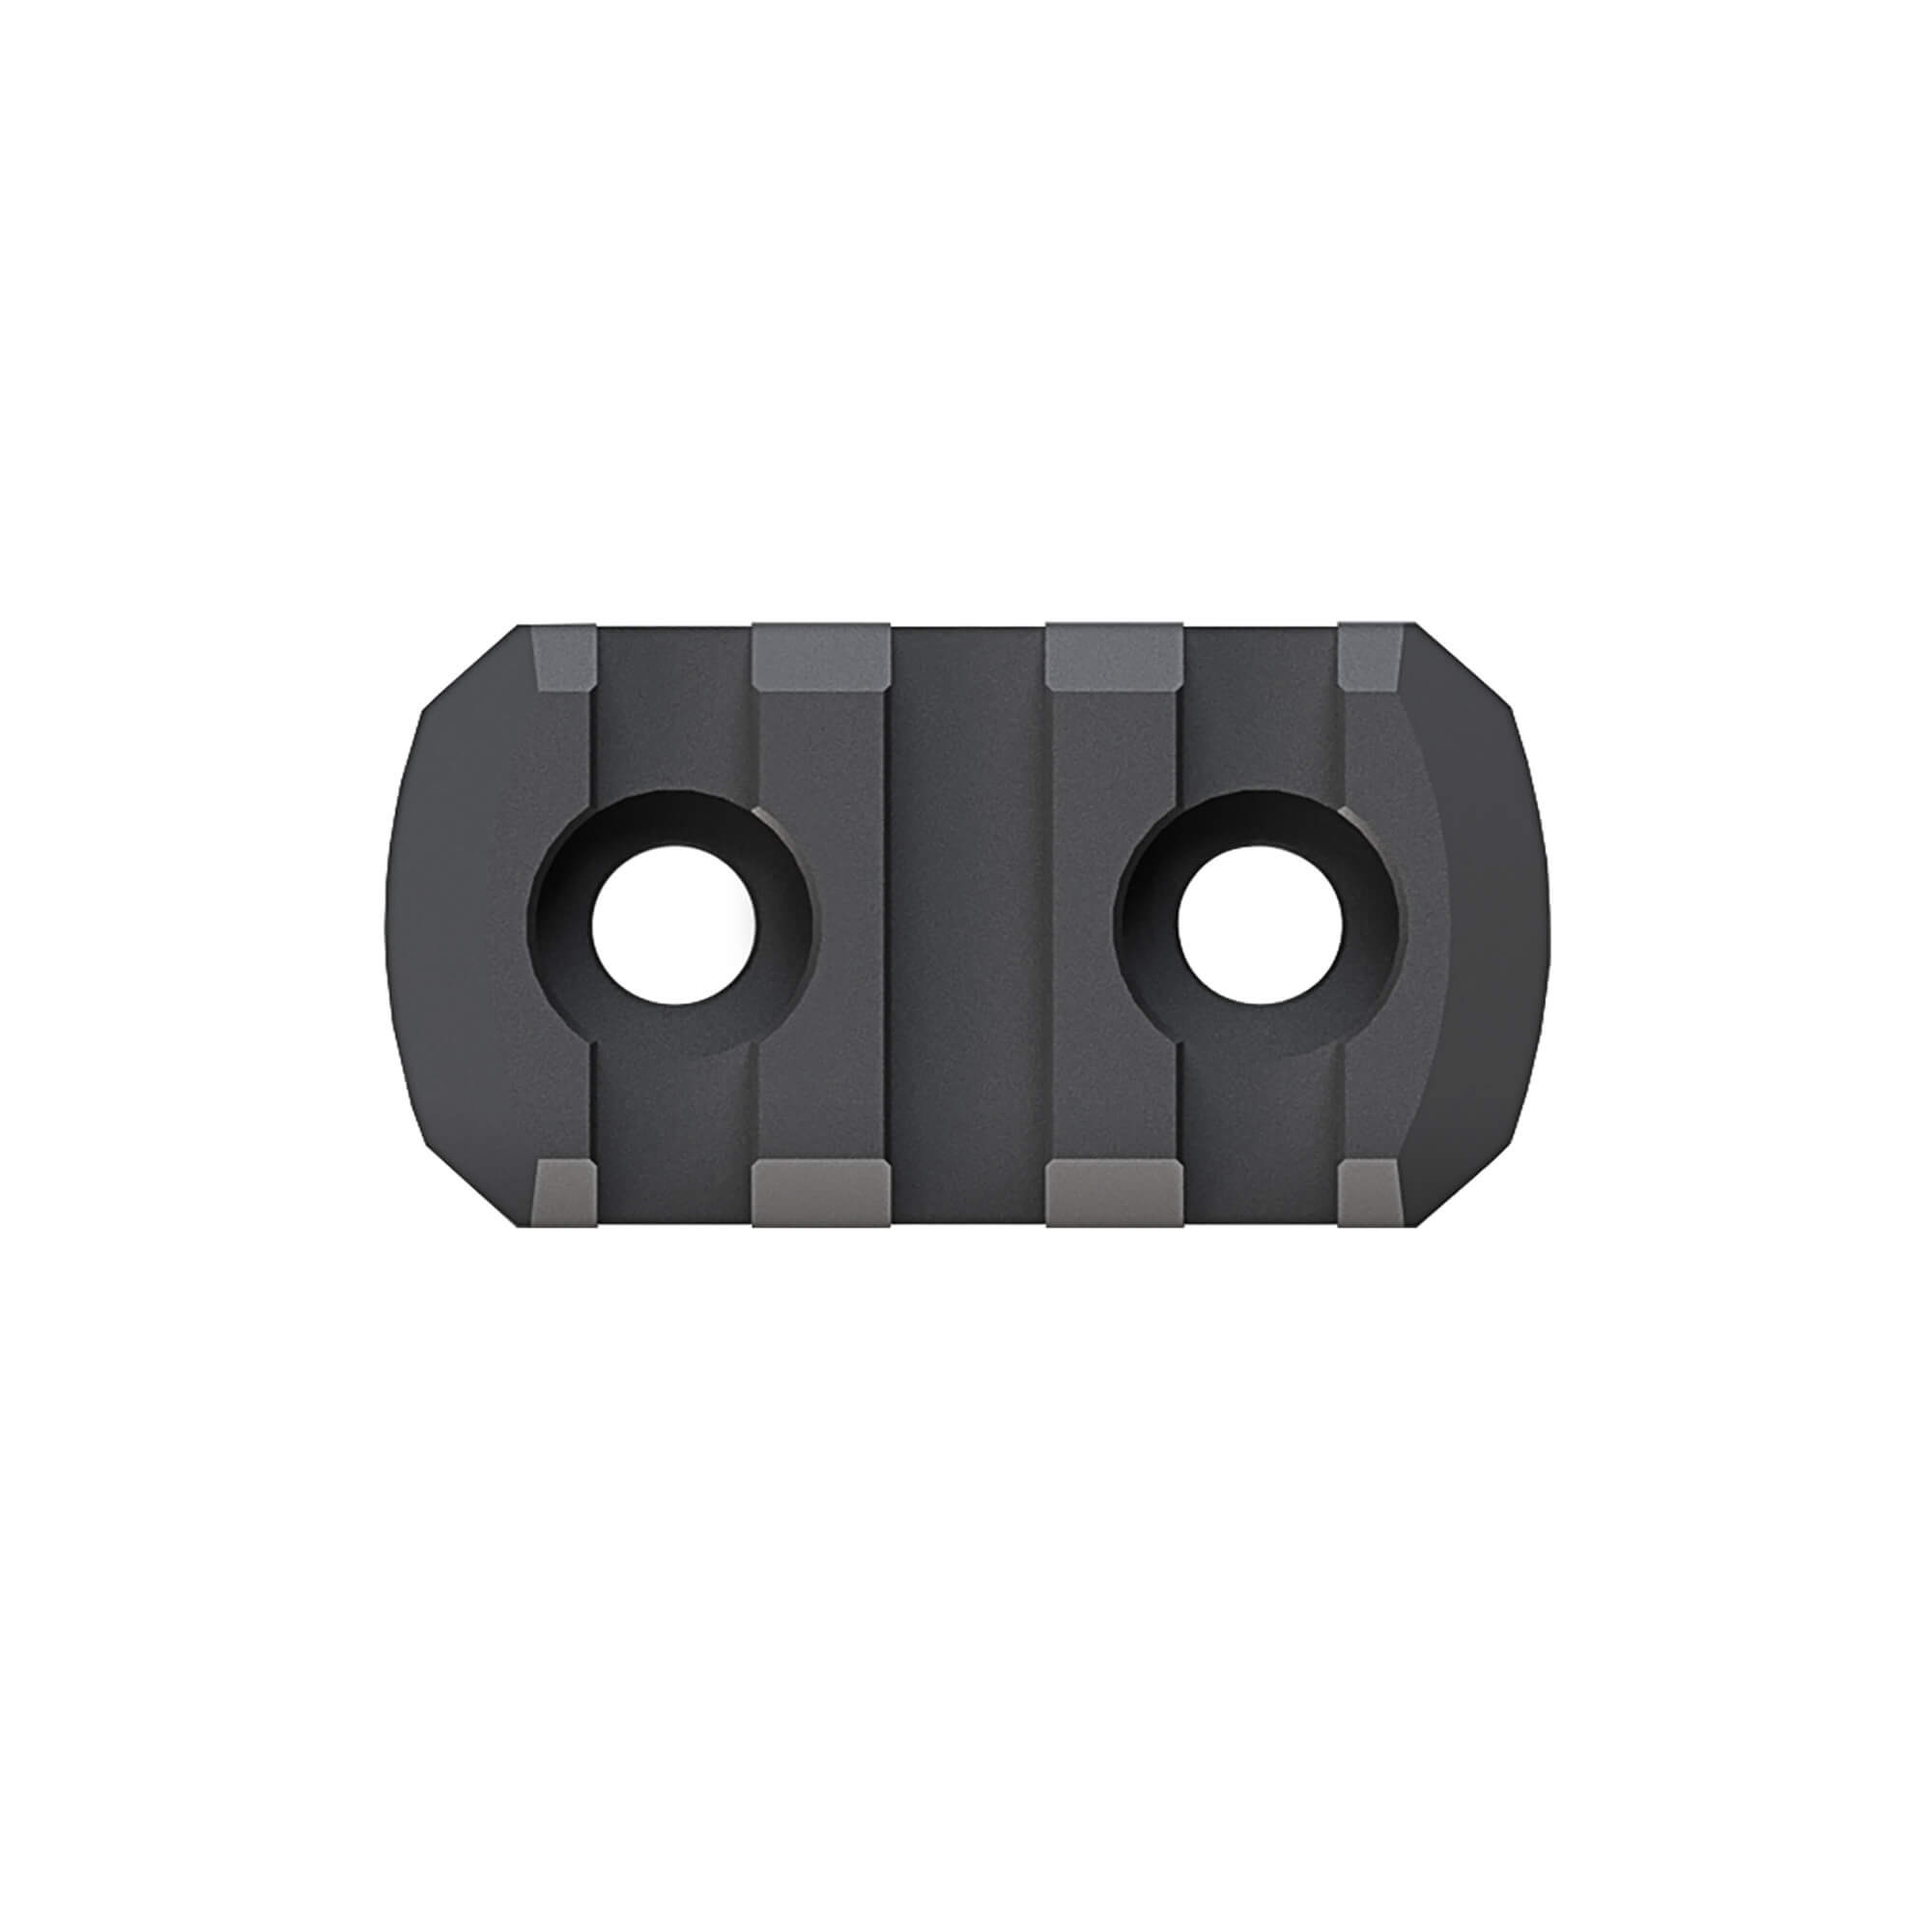 """Designed for use with all M-LOK compatible Hand Guards and Forends"""" M-LOK Polymer Rail Sections provide a cost effective method of attaching various 1913 Picatinny spec rail-mounted accessories such as lights"""" vertical grips"""" etc. Injection molded from a proprietary reinforced composite for enhanced strength and durability while remaining lightweight"""" Rail Sections also feature beveled ends to reduce snagging and eliminate sharp corners and edges. All hardware necessary for attachment directly to M-LOK Slots on either aluminum or polymer hand guards and forends is included. 3 Slots"""" max overall length of 1.6 in. Made in U.S.A."""